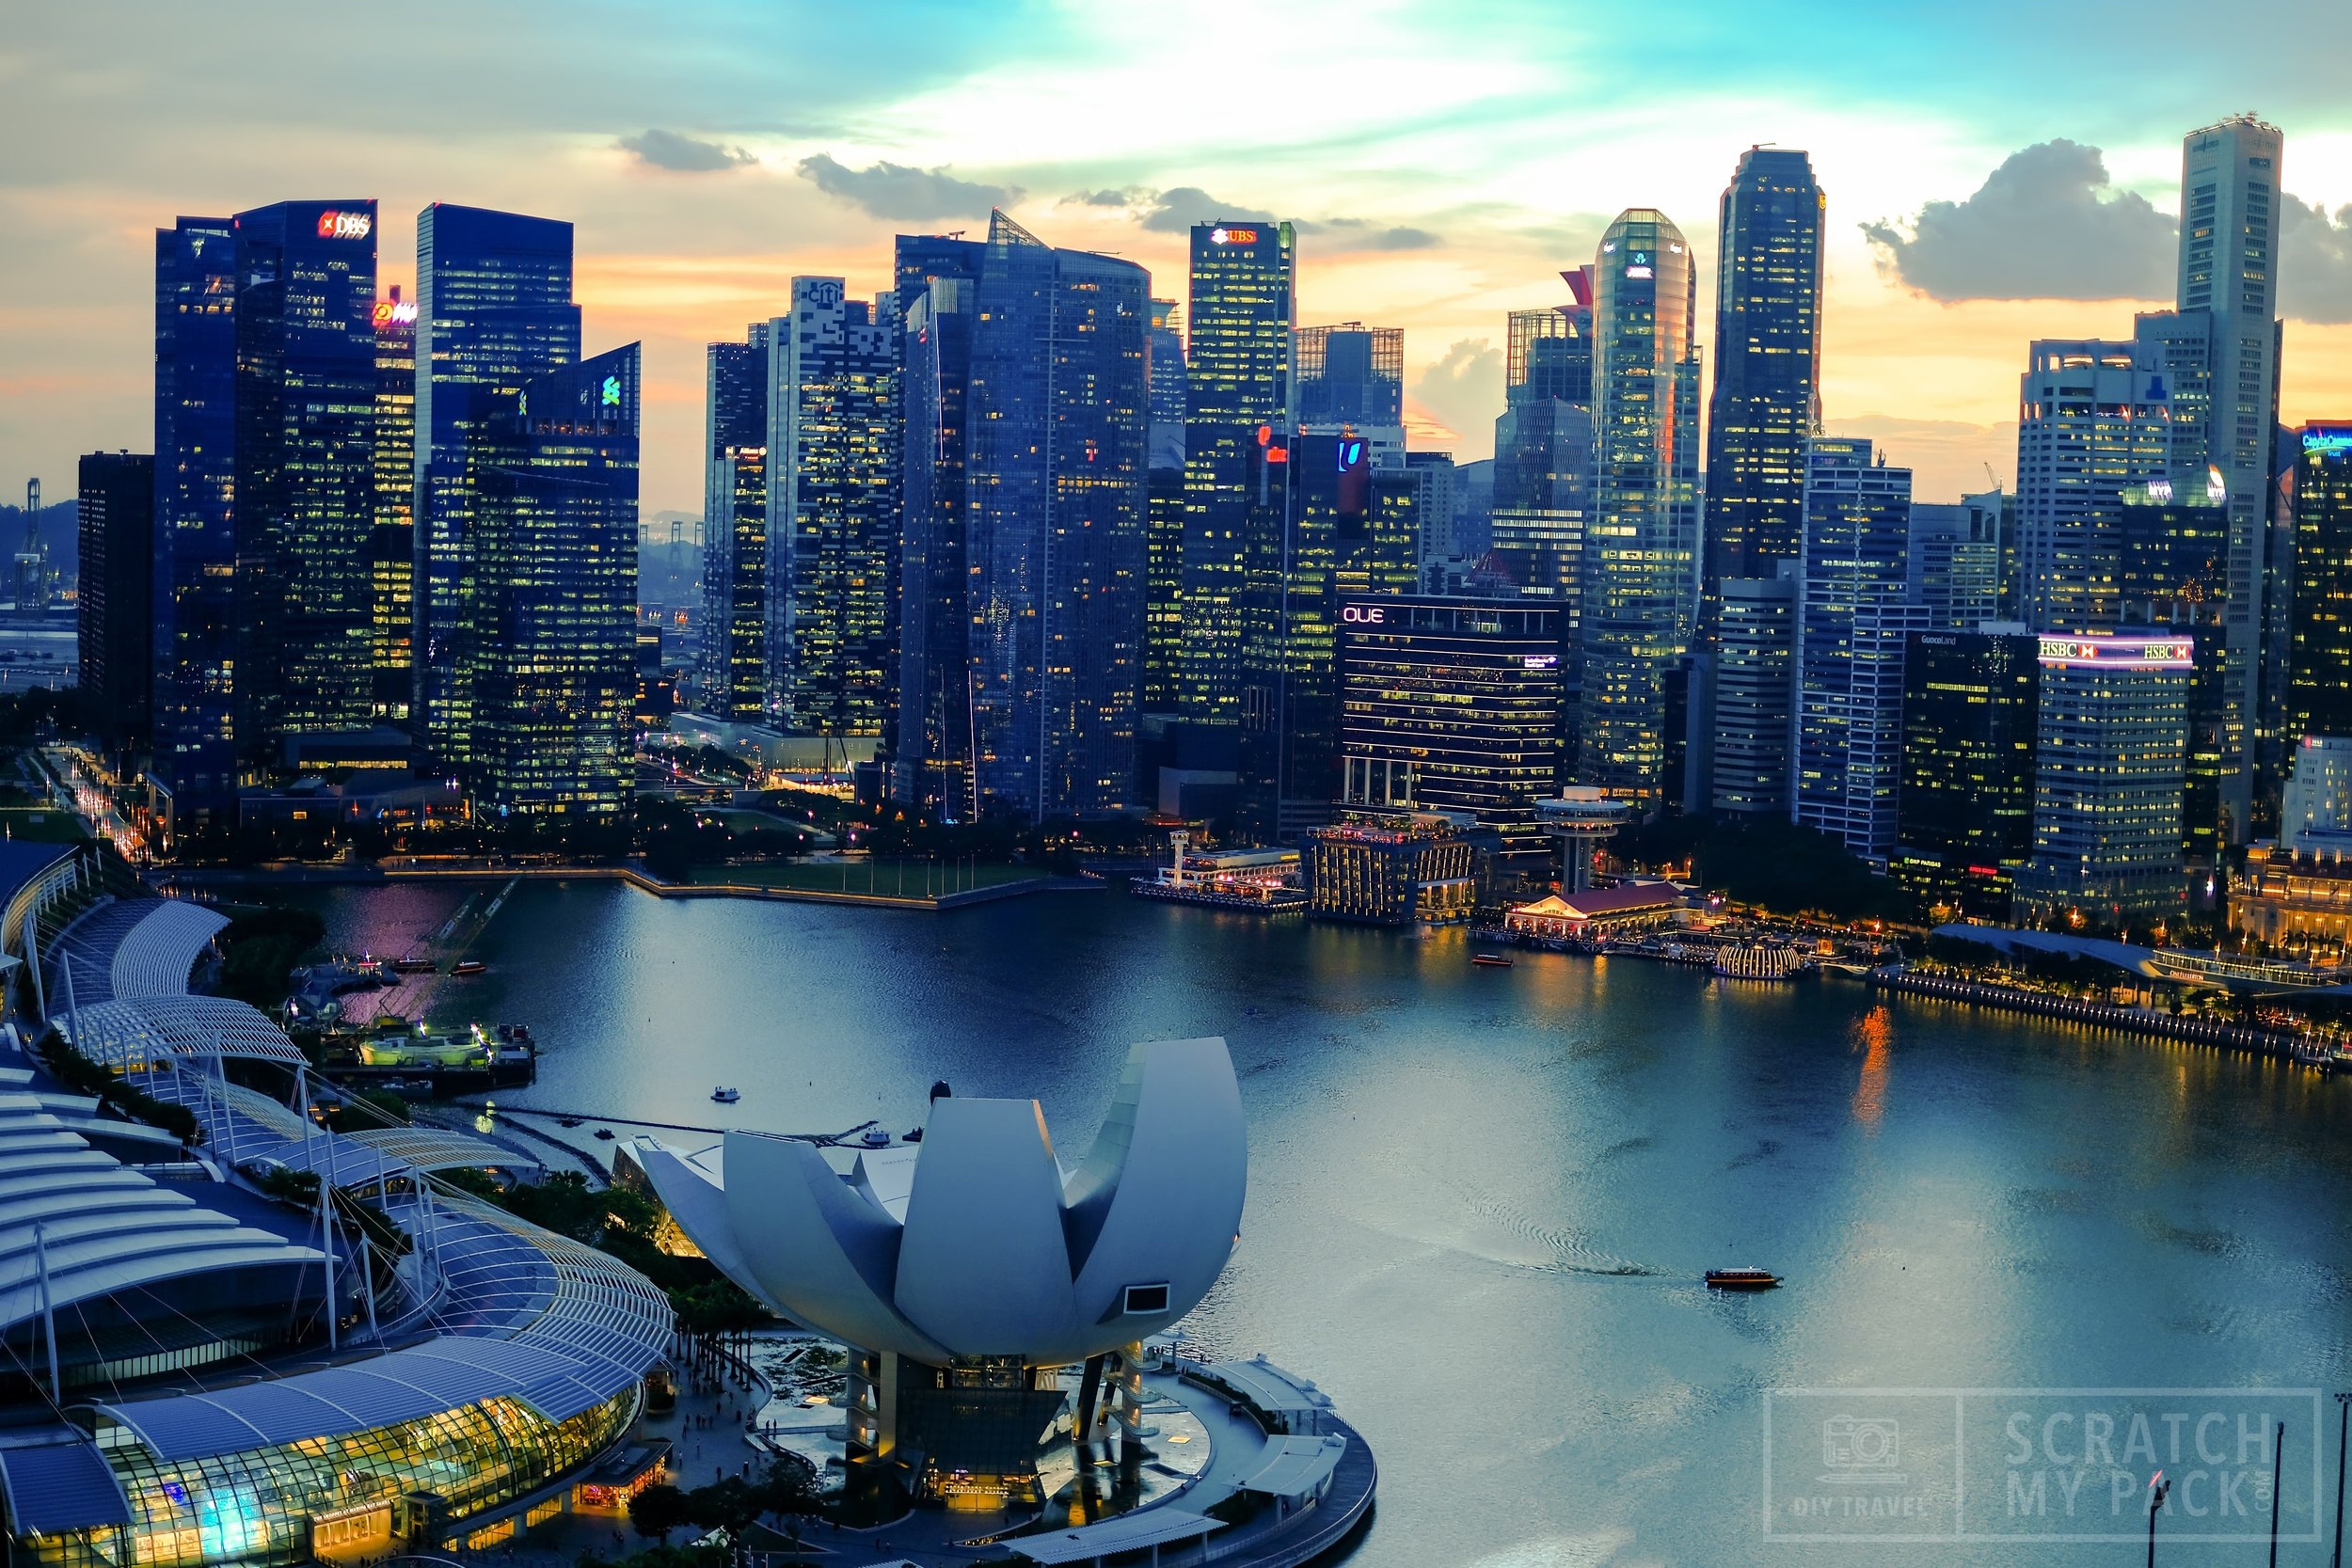 A view of the city from atop the Singapore Flyer